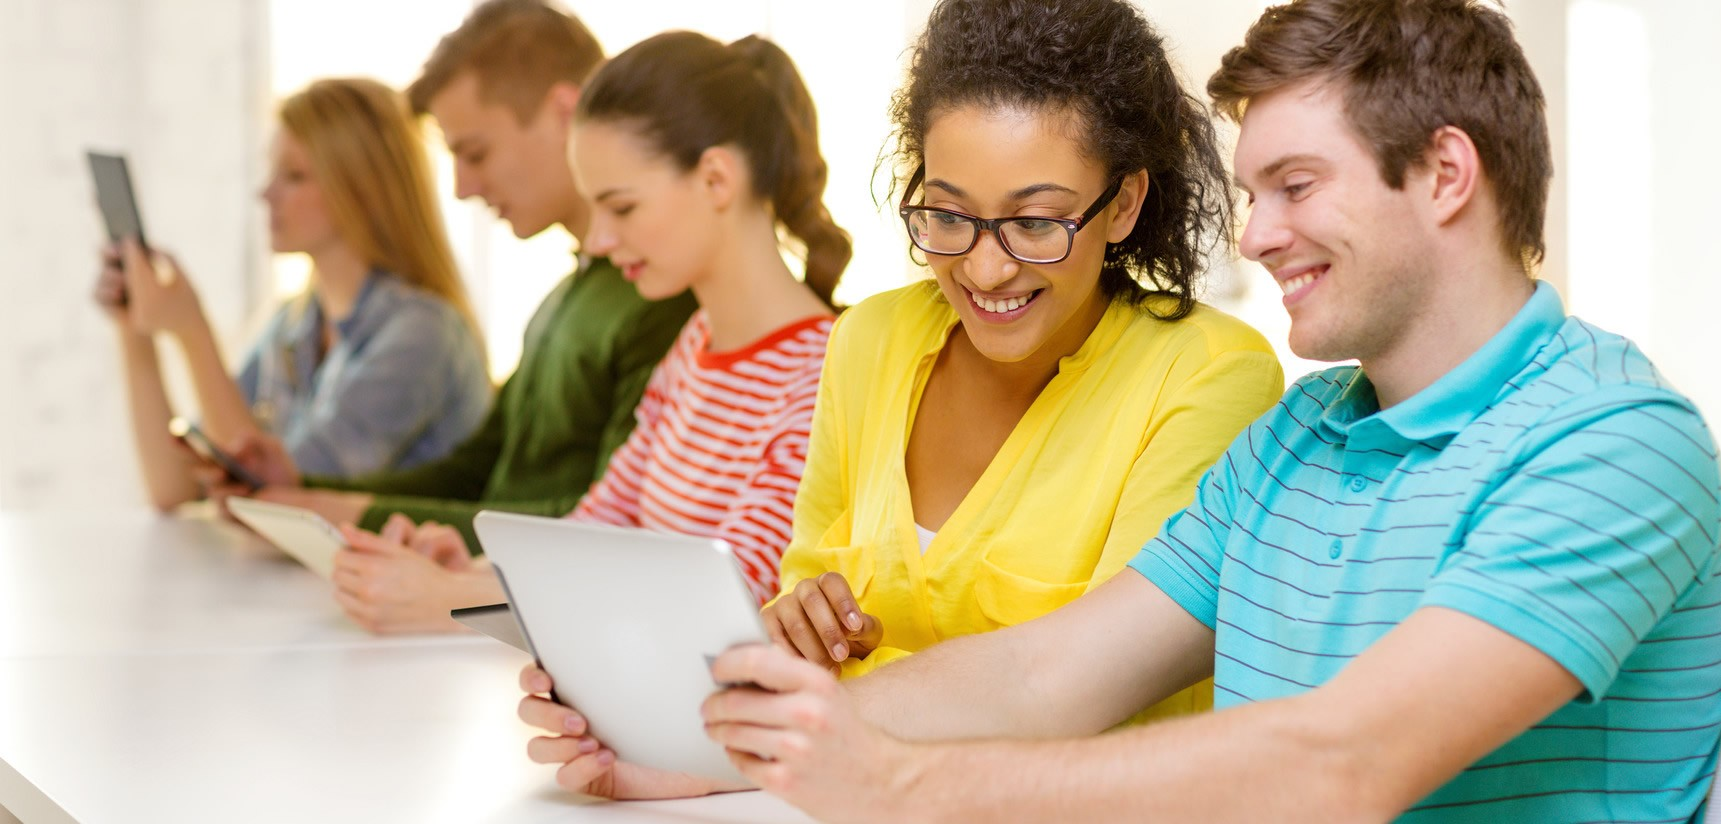 smiling-students-looking-at-tablet-pc-at-school-m-1721